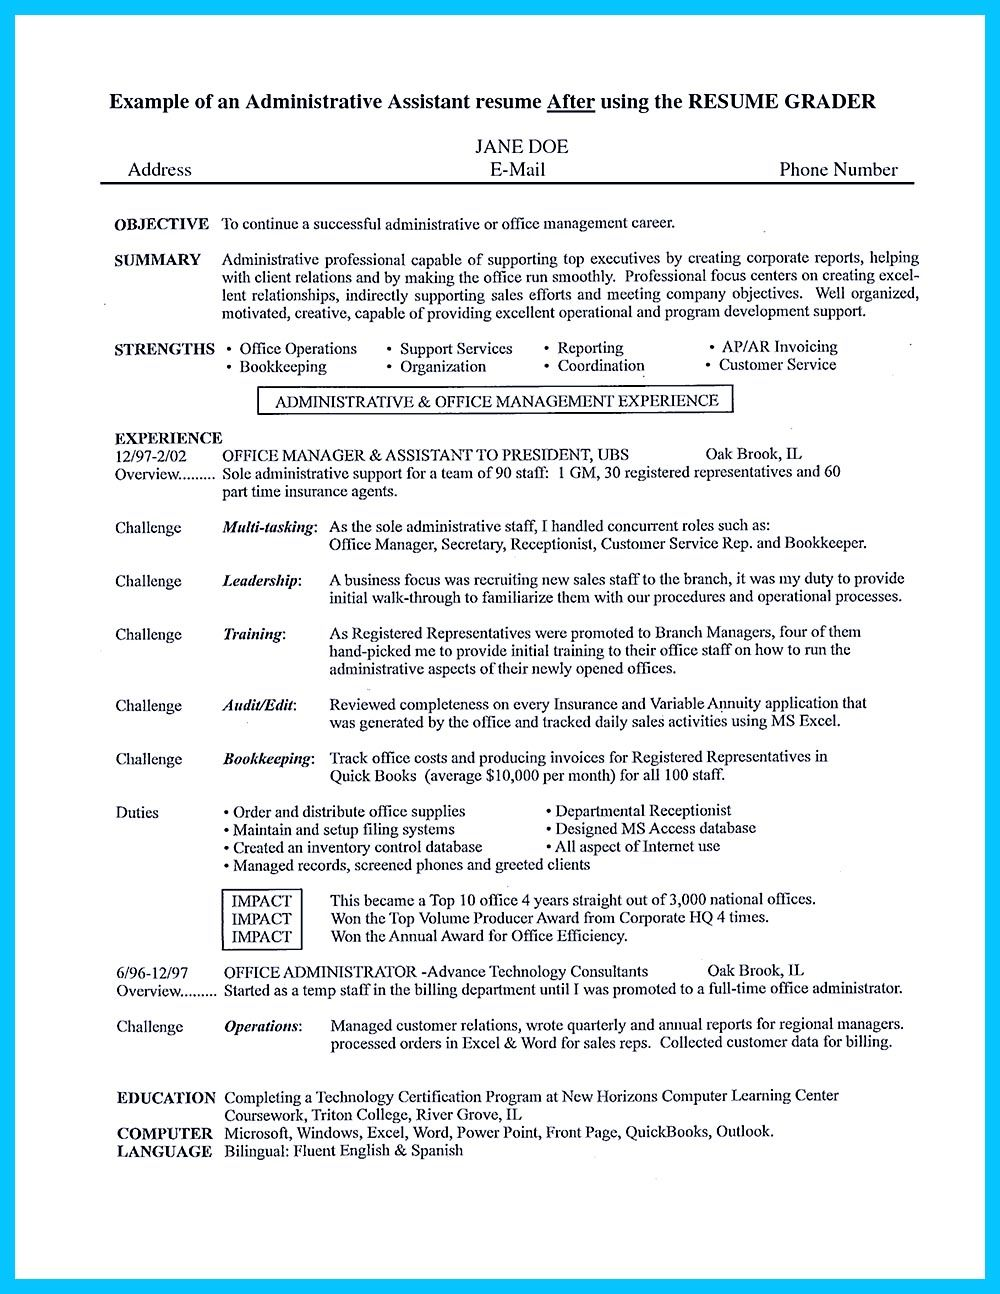 Administrative Assistant Resume Objective Examples In Writing Entry Level Administrative Assistant Resume You Need